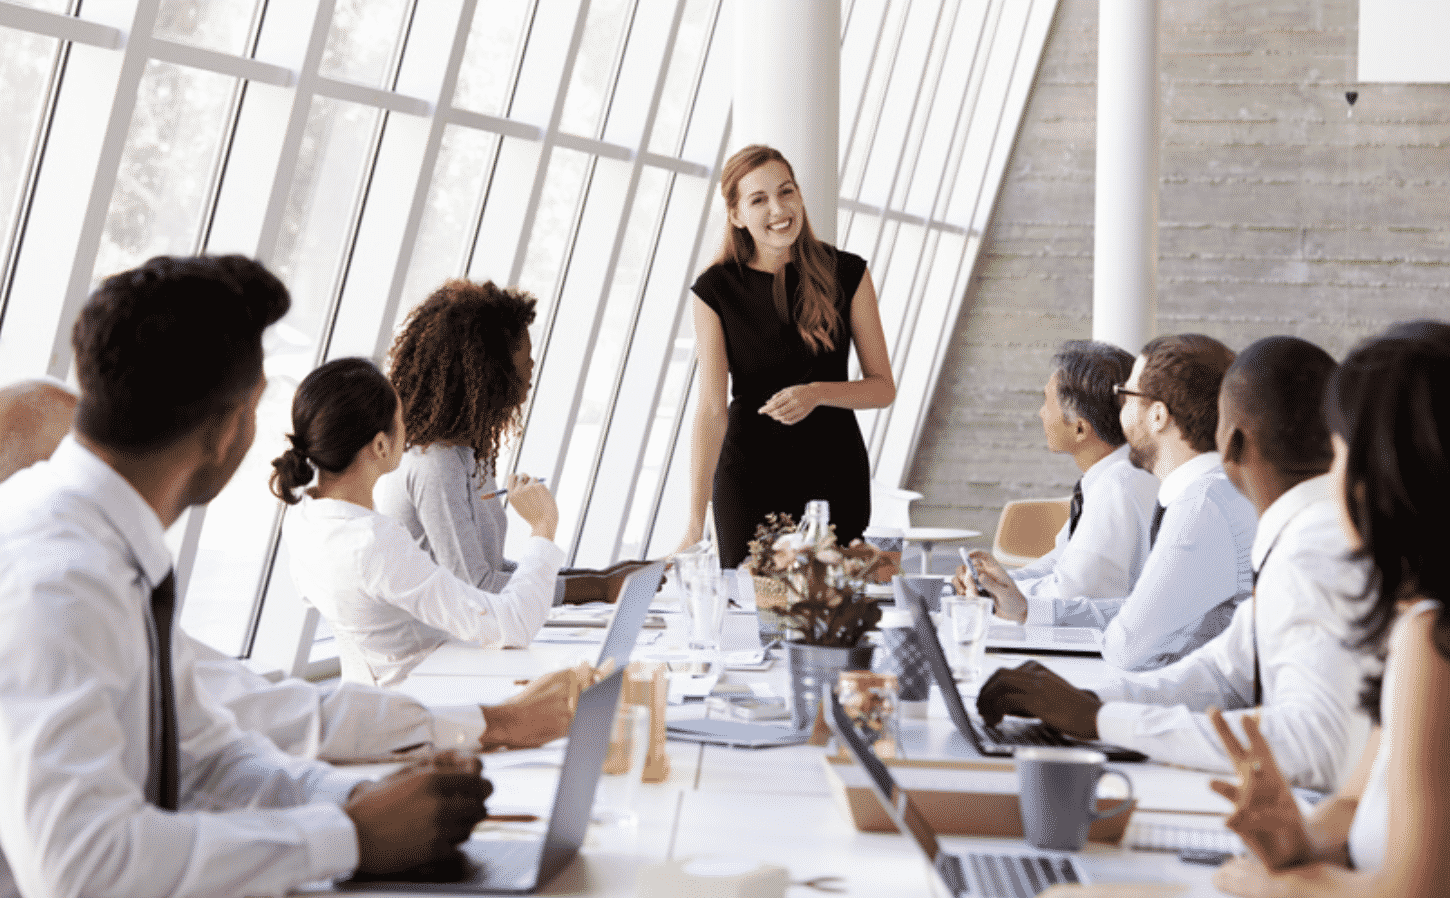 5 Ways to Improve Communication to get Good Business Results